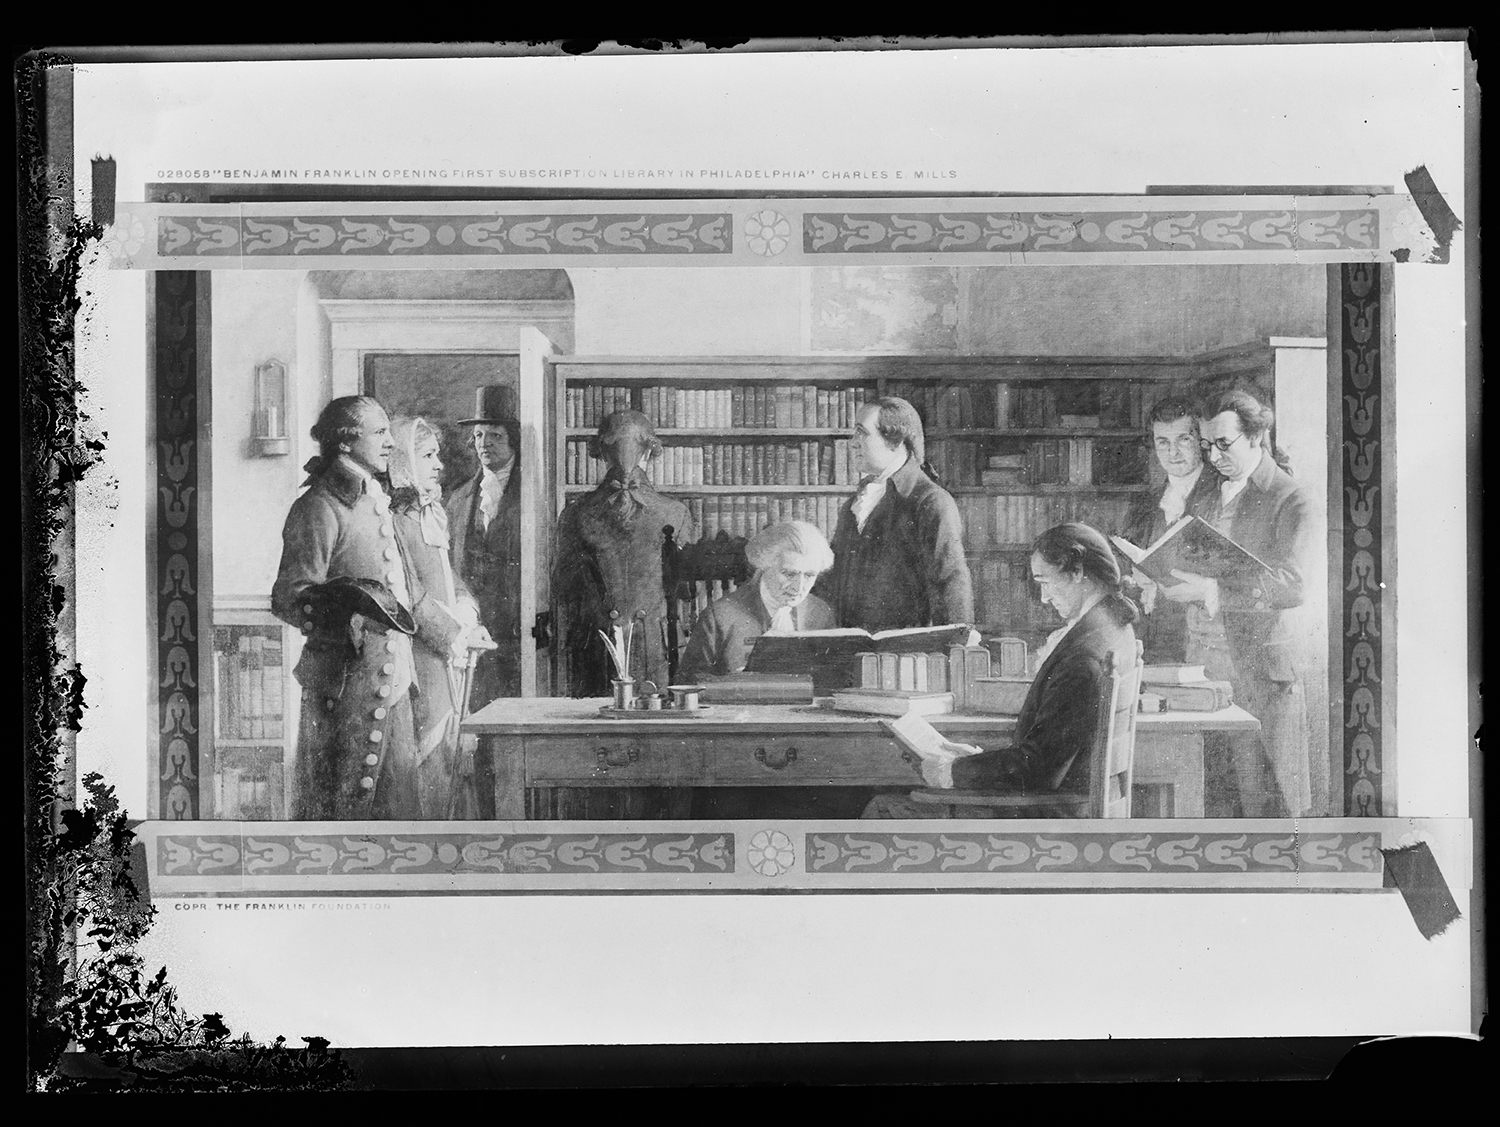 <p><em>Benjamin Franklin opening the first subscription library in Philadelphia</em> (Charles E. Mills, c. 1912). Photograph of a mural, dry plate negative. Source: Library of Congress, Prints and Photographs Division.</p>